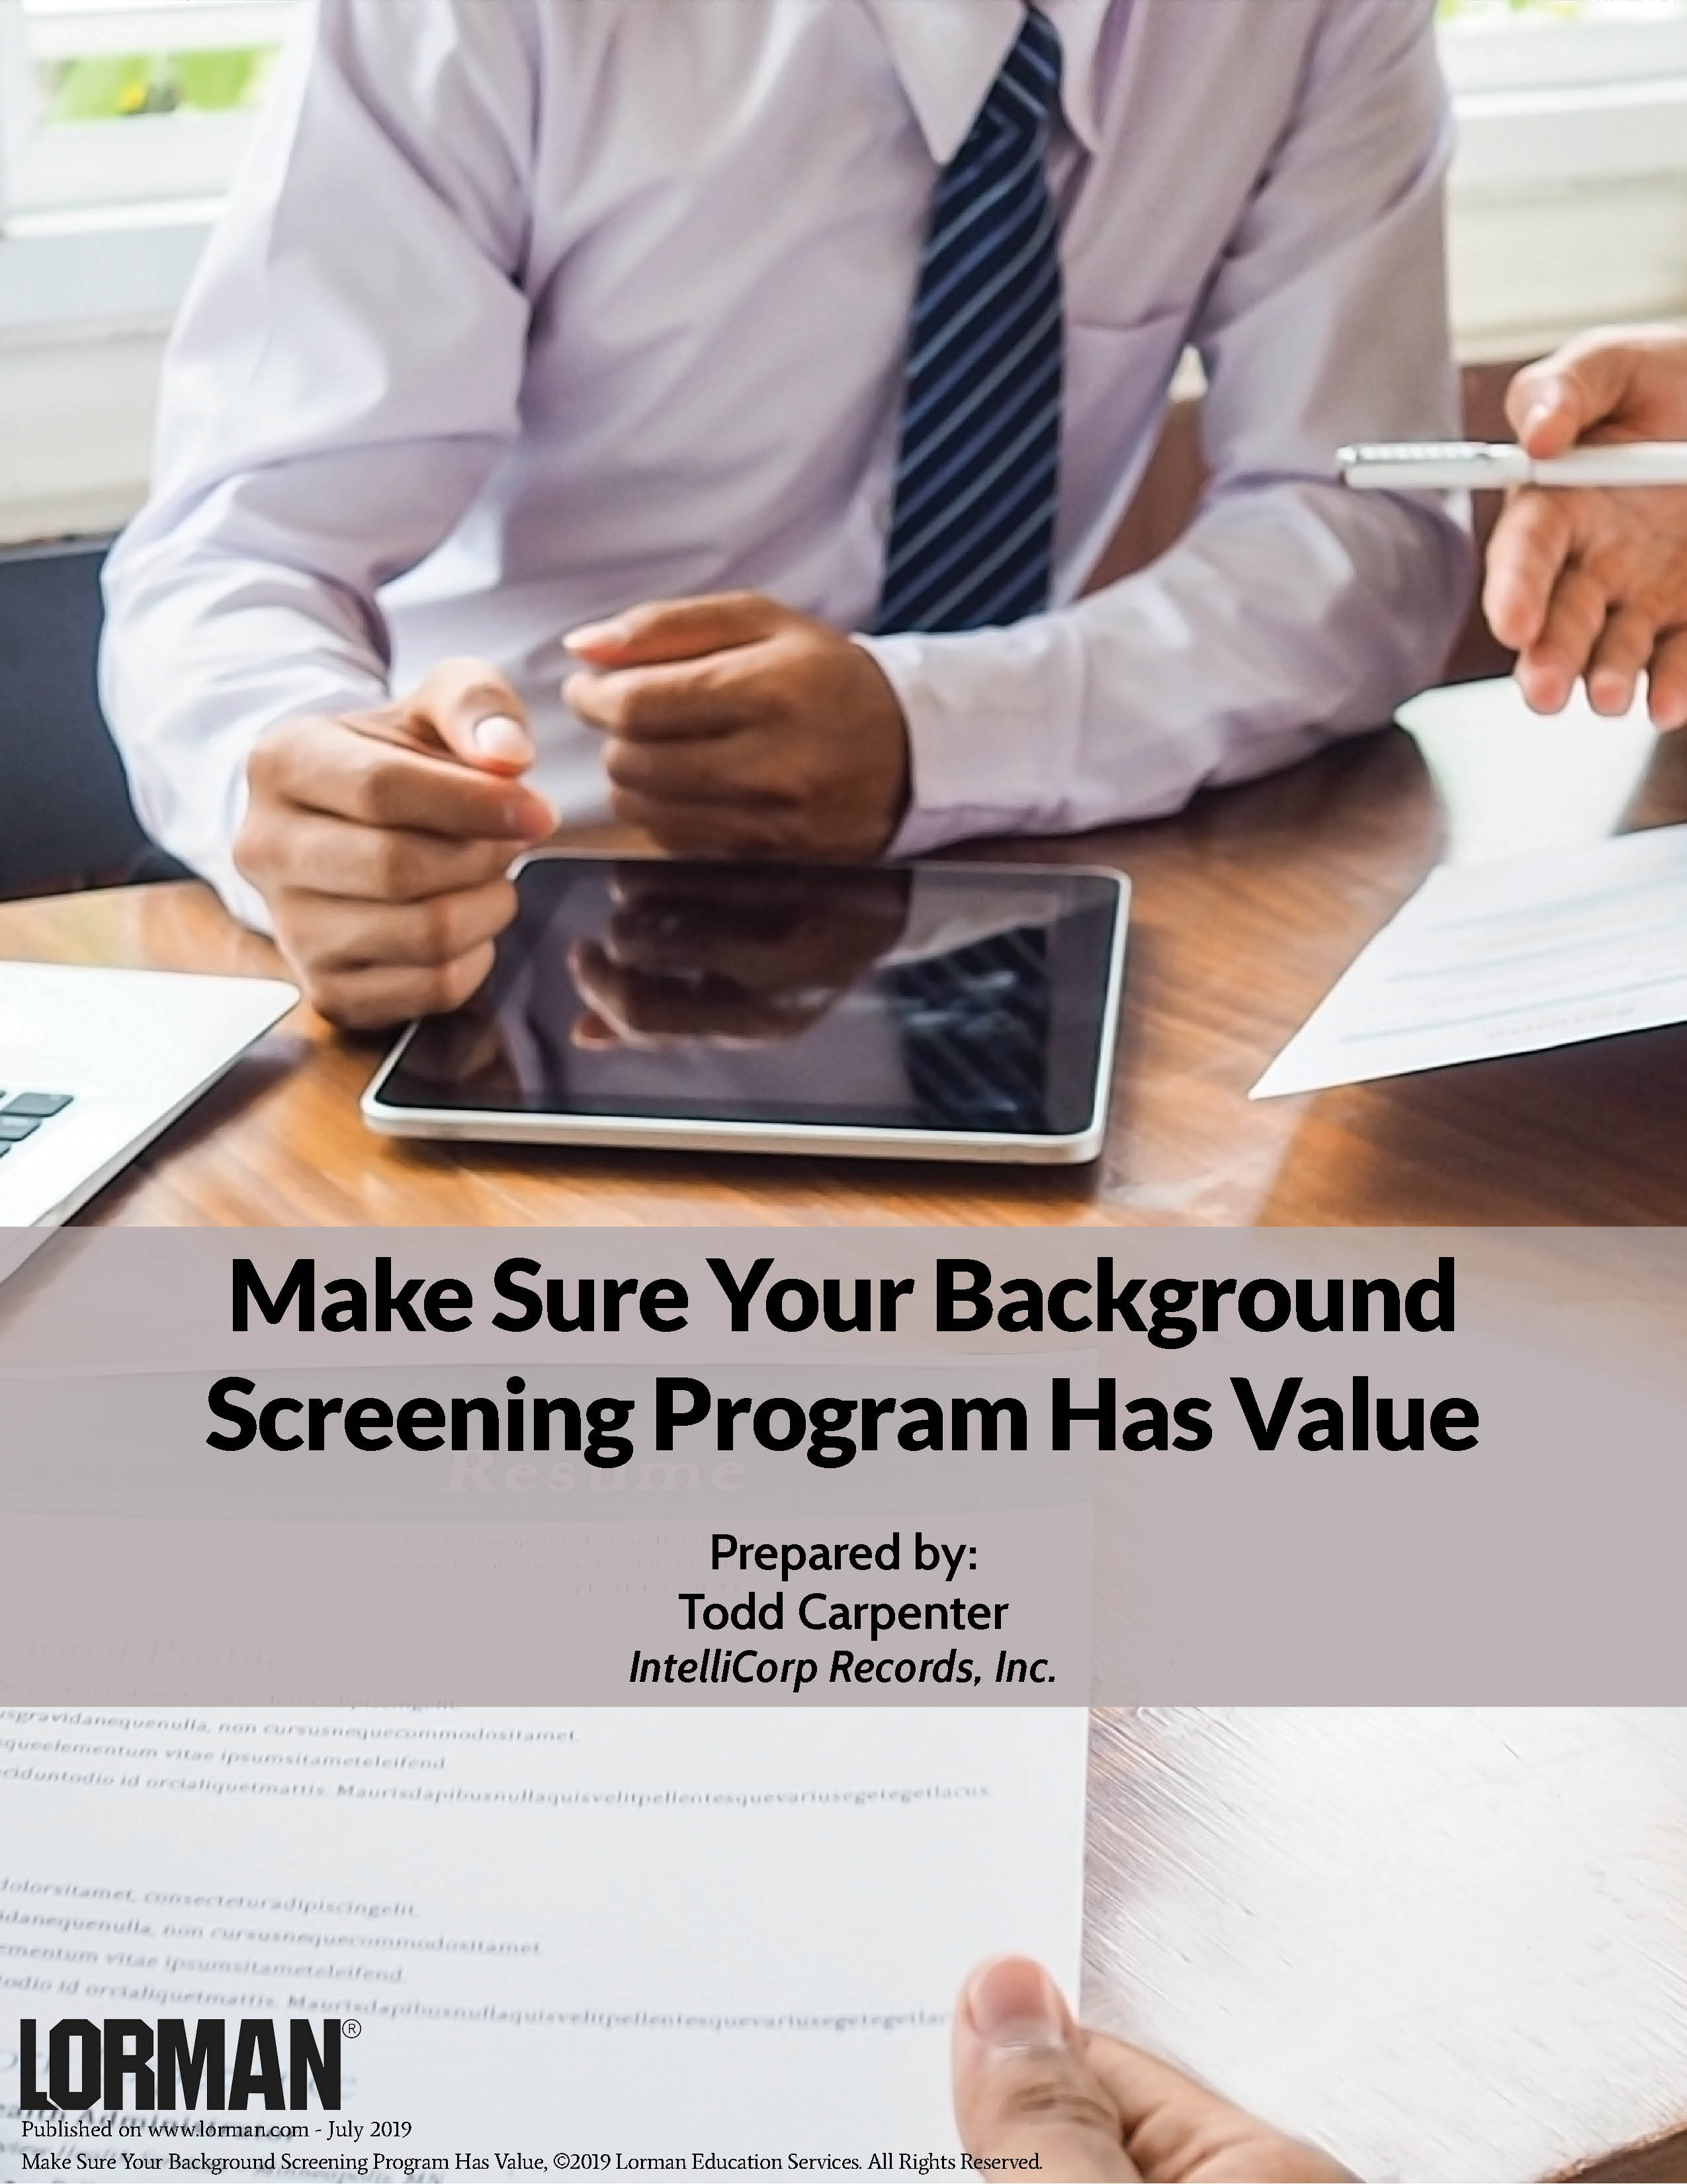 Make Sure Your Background Screening Program Has Value